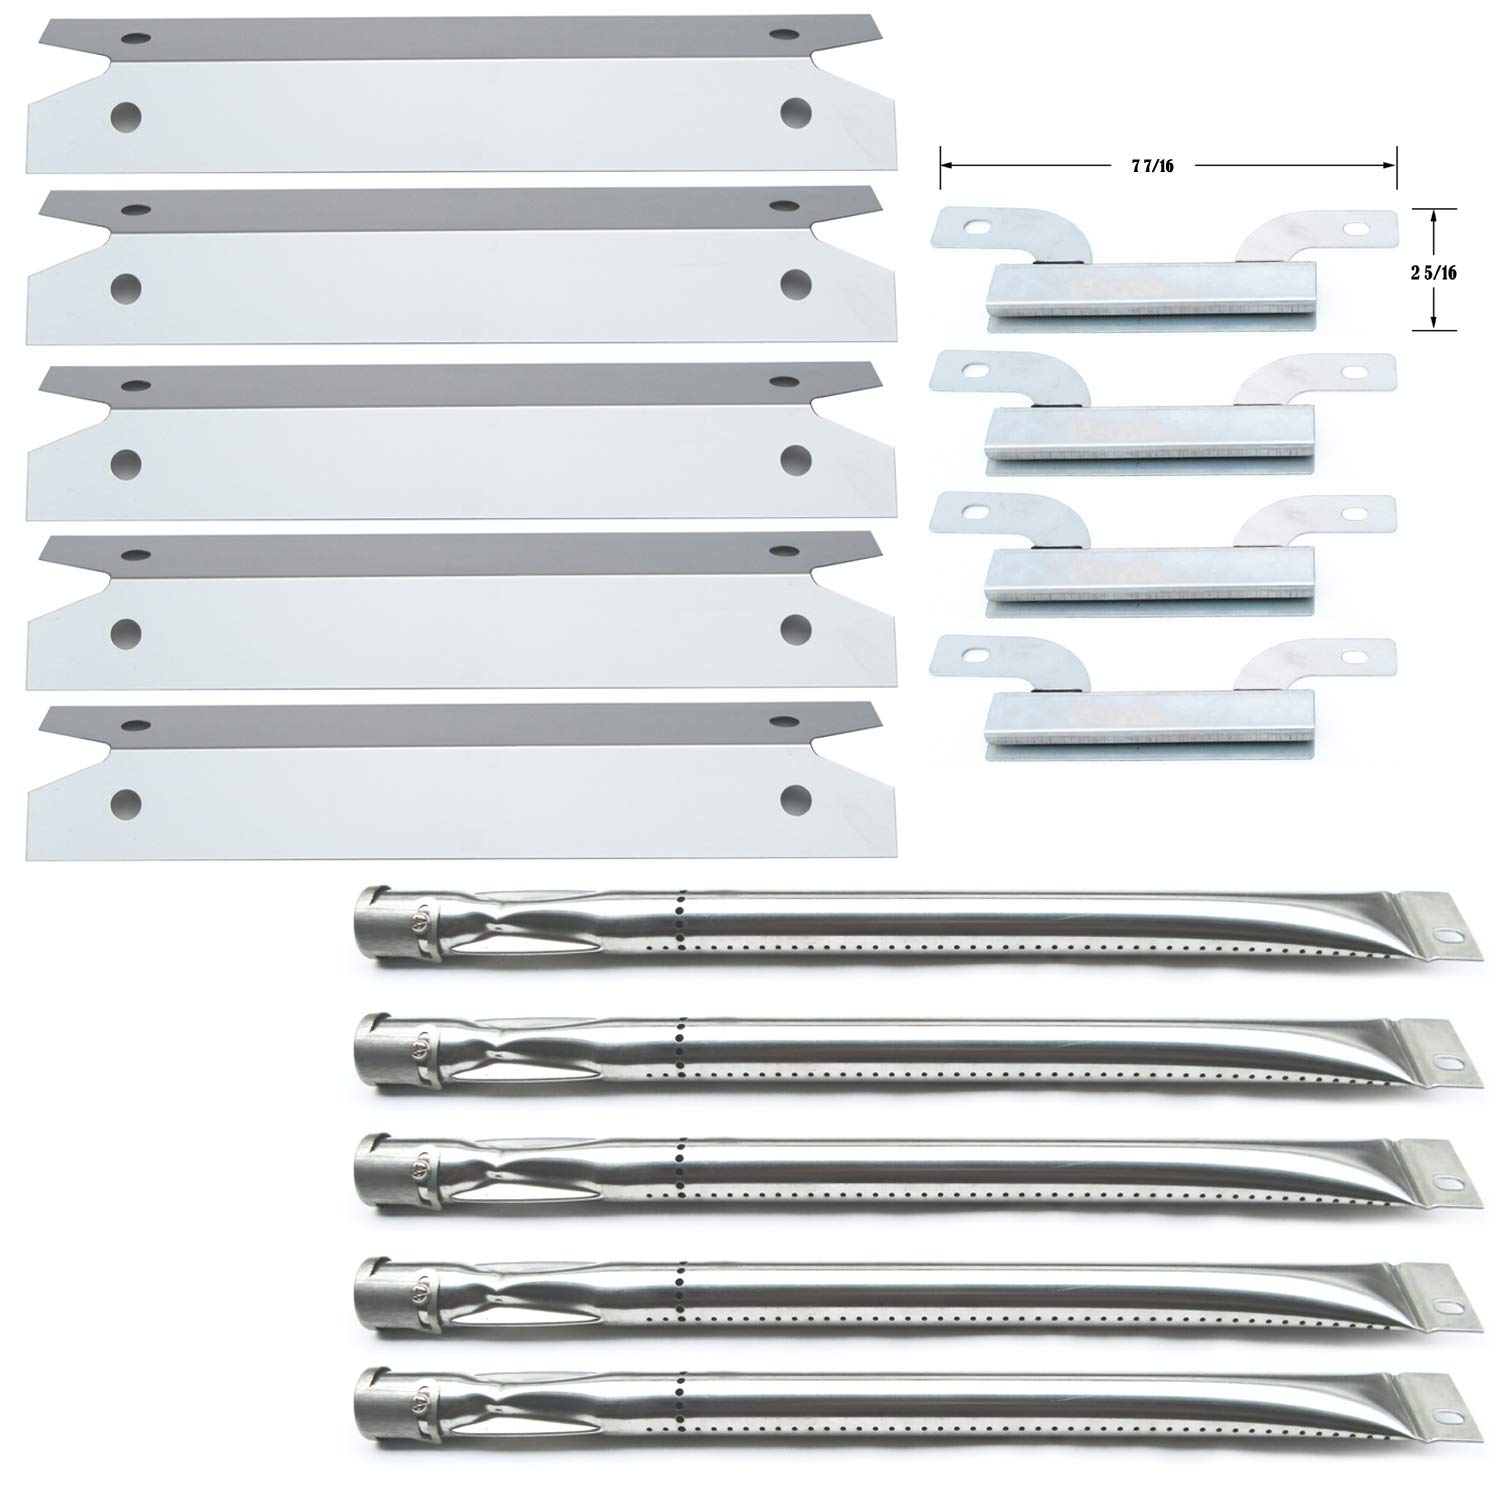 Direct Store Parts Kit DG261 Replacement for Gas Grill Brinkmann 810-1575-W Gas Grill Parts Kit (Stainless Steel Burner + Stainless Steel Carry-Over Tubes + Stainless Steel Heat Plate)